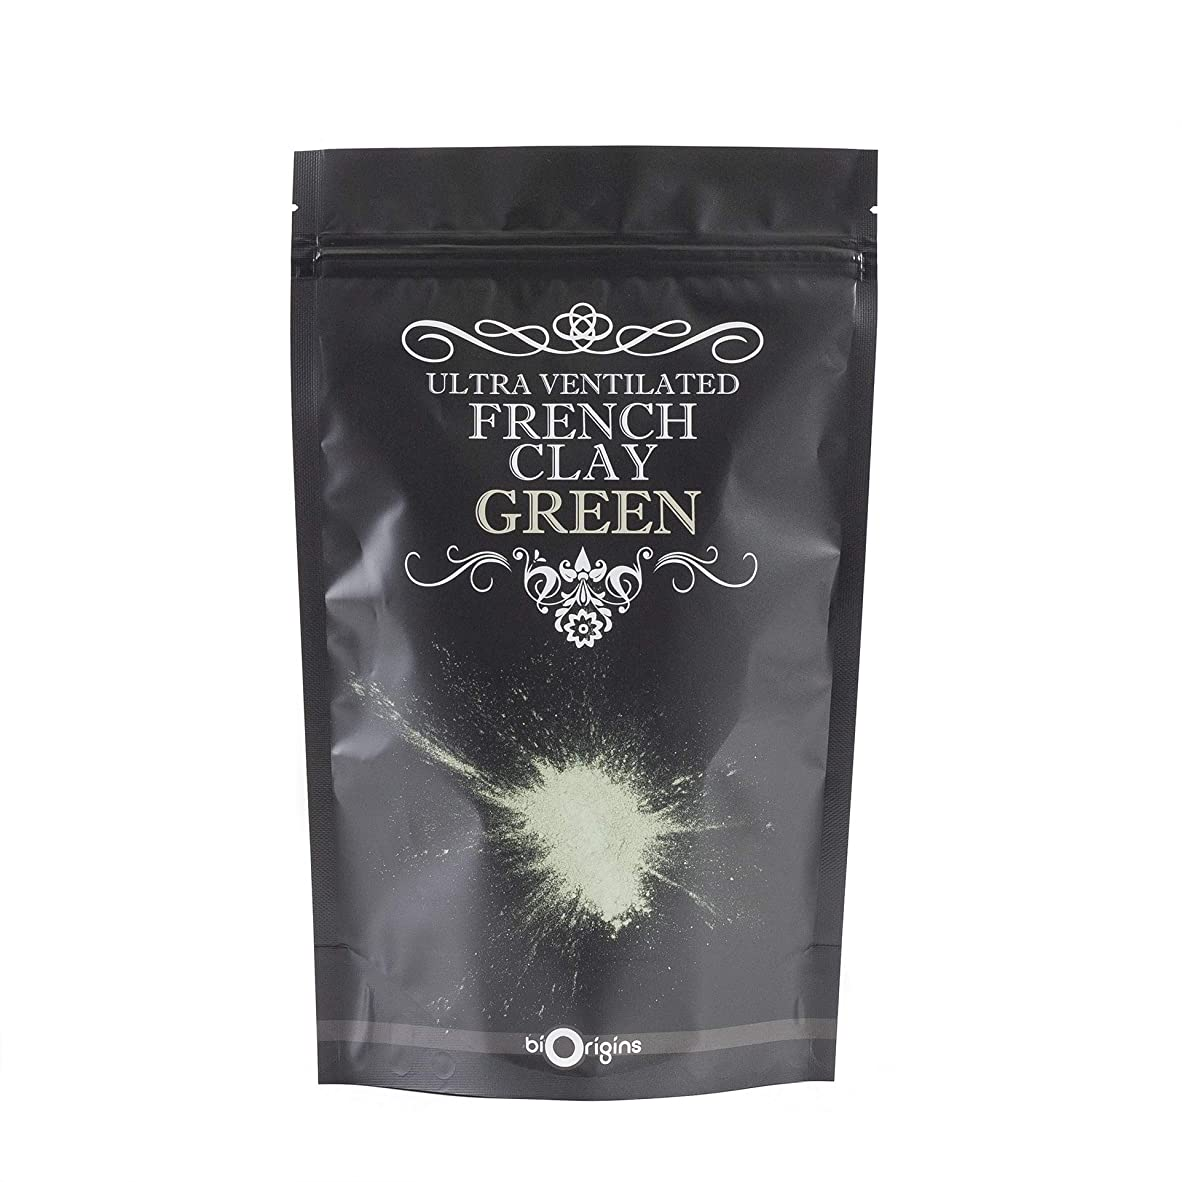 虚弱一時停止ドラマGreen Ultra Ventilated French Clay - 500g